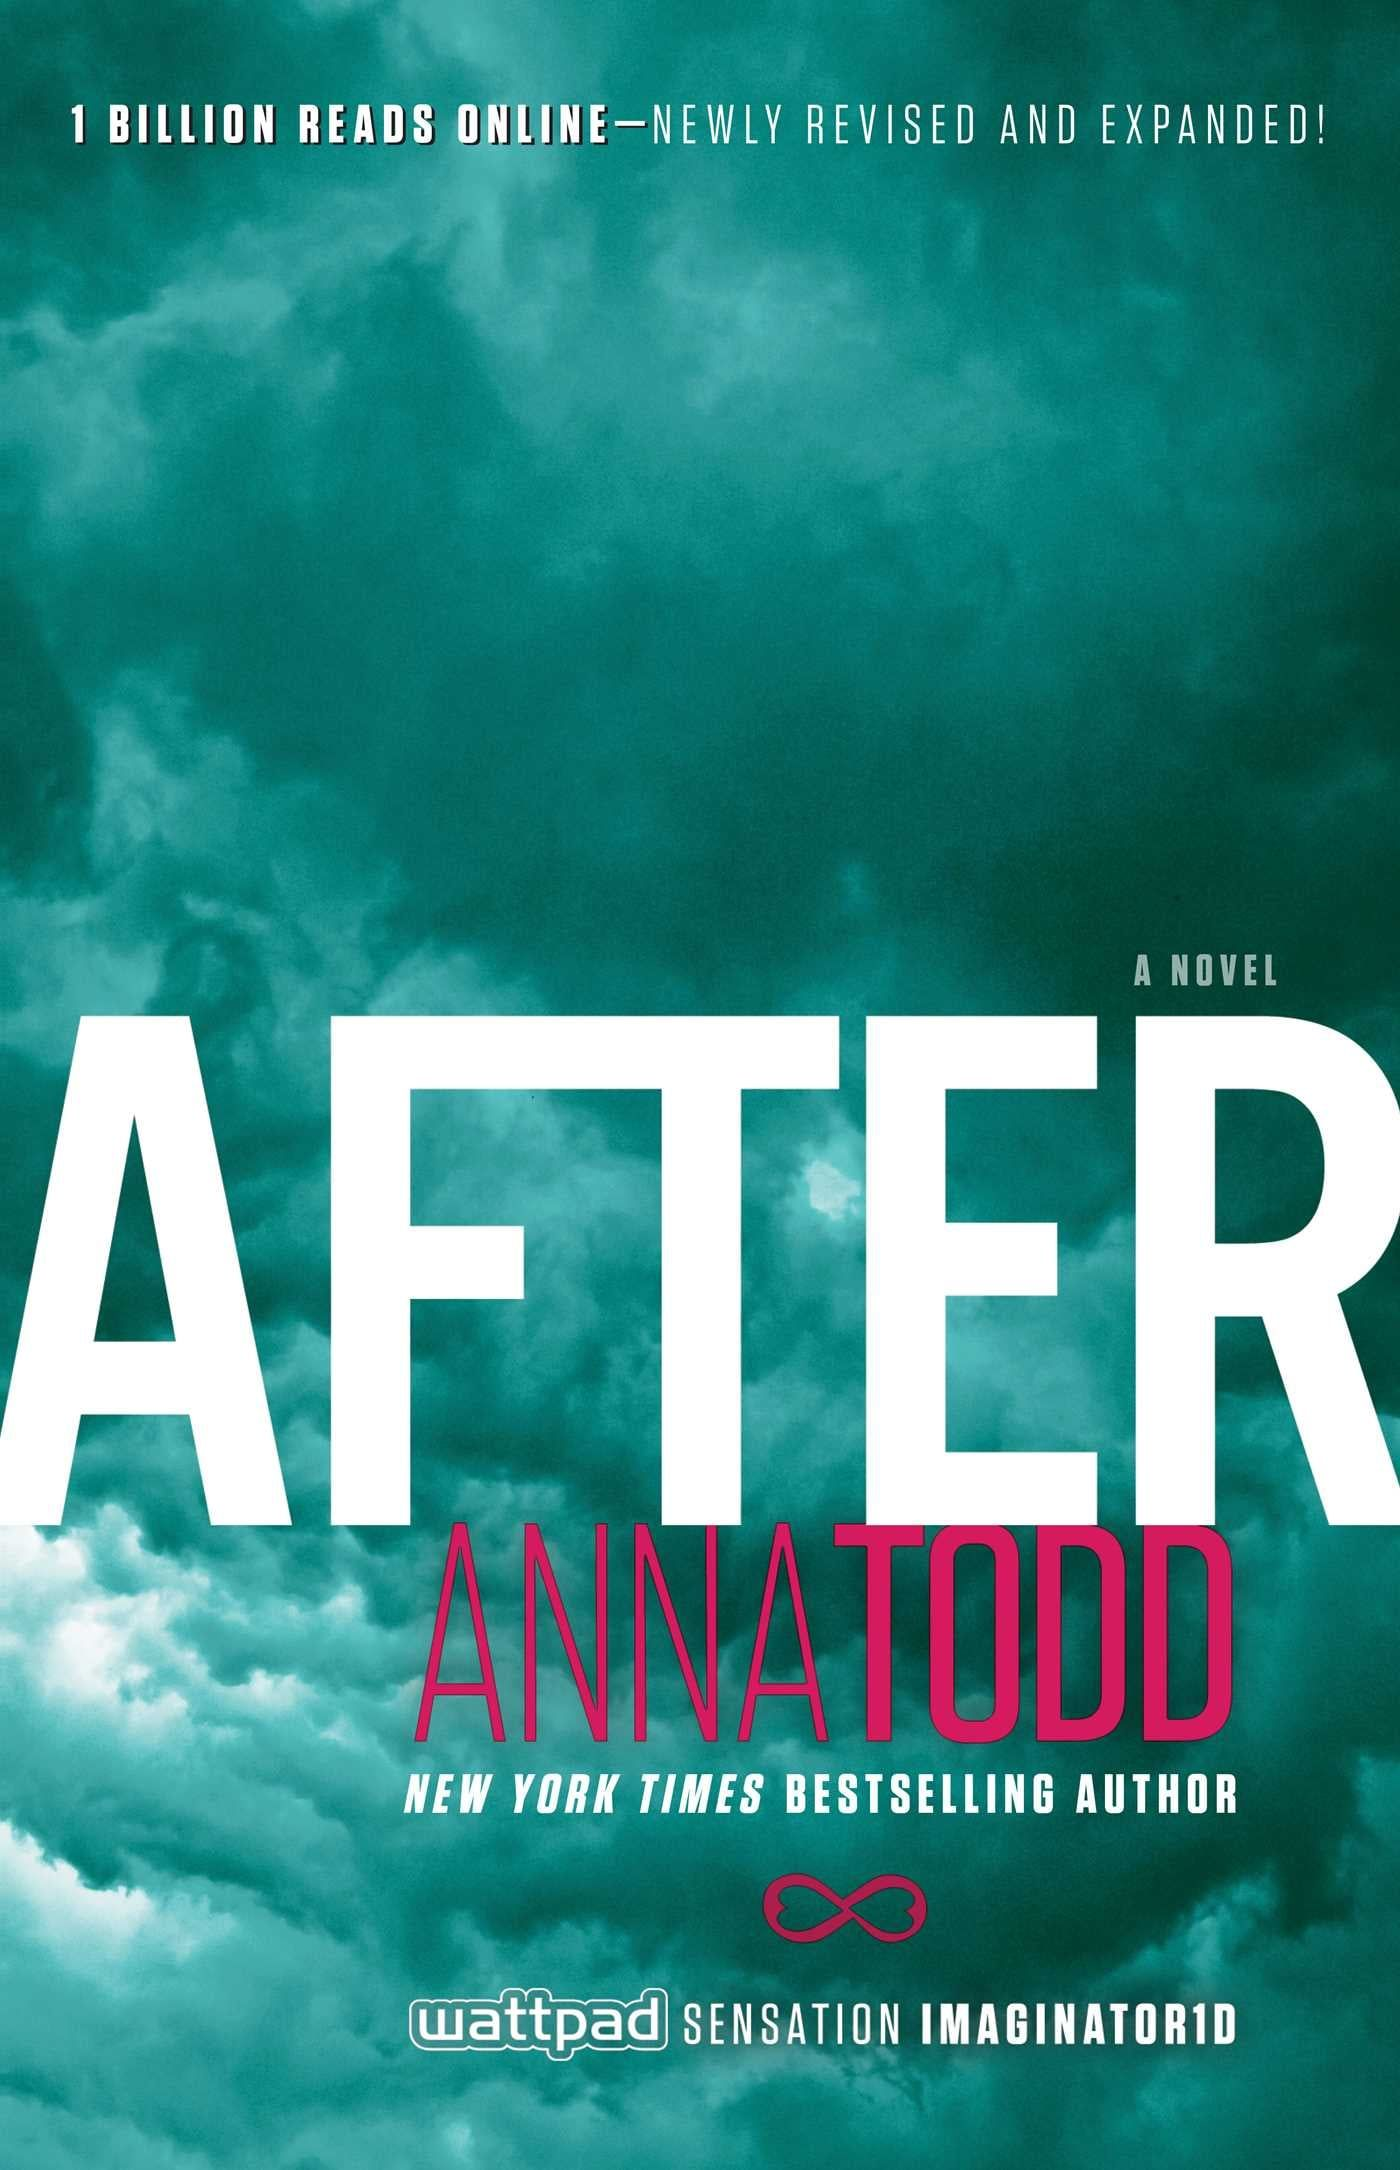 Before Anna Todd Pdf Download Free